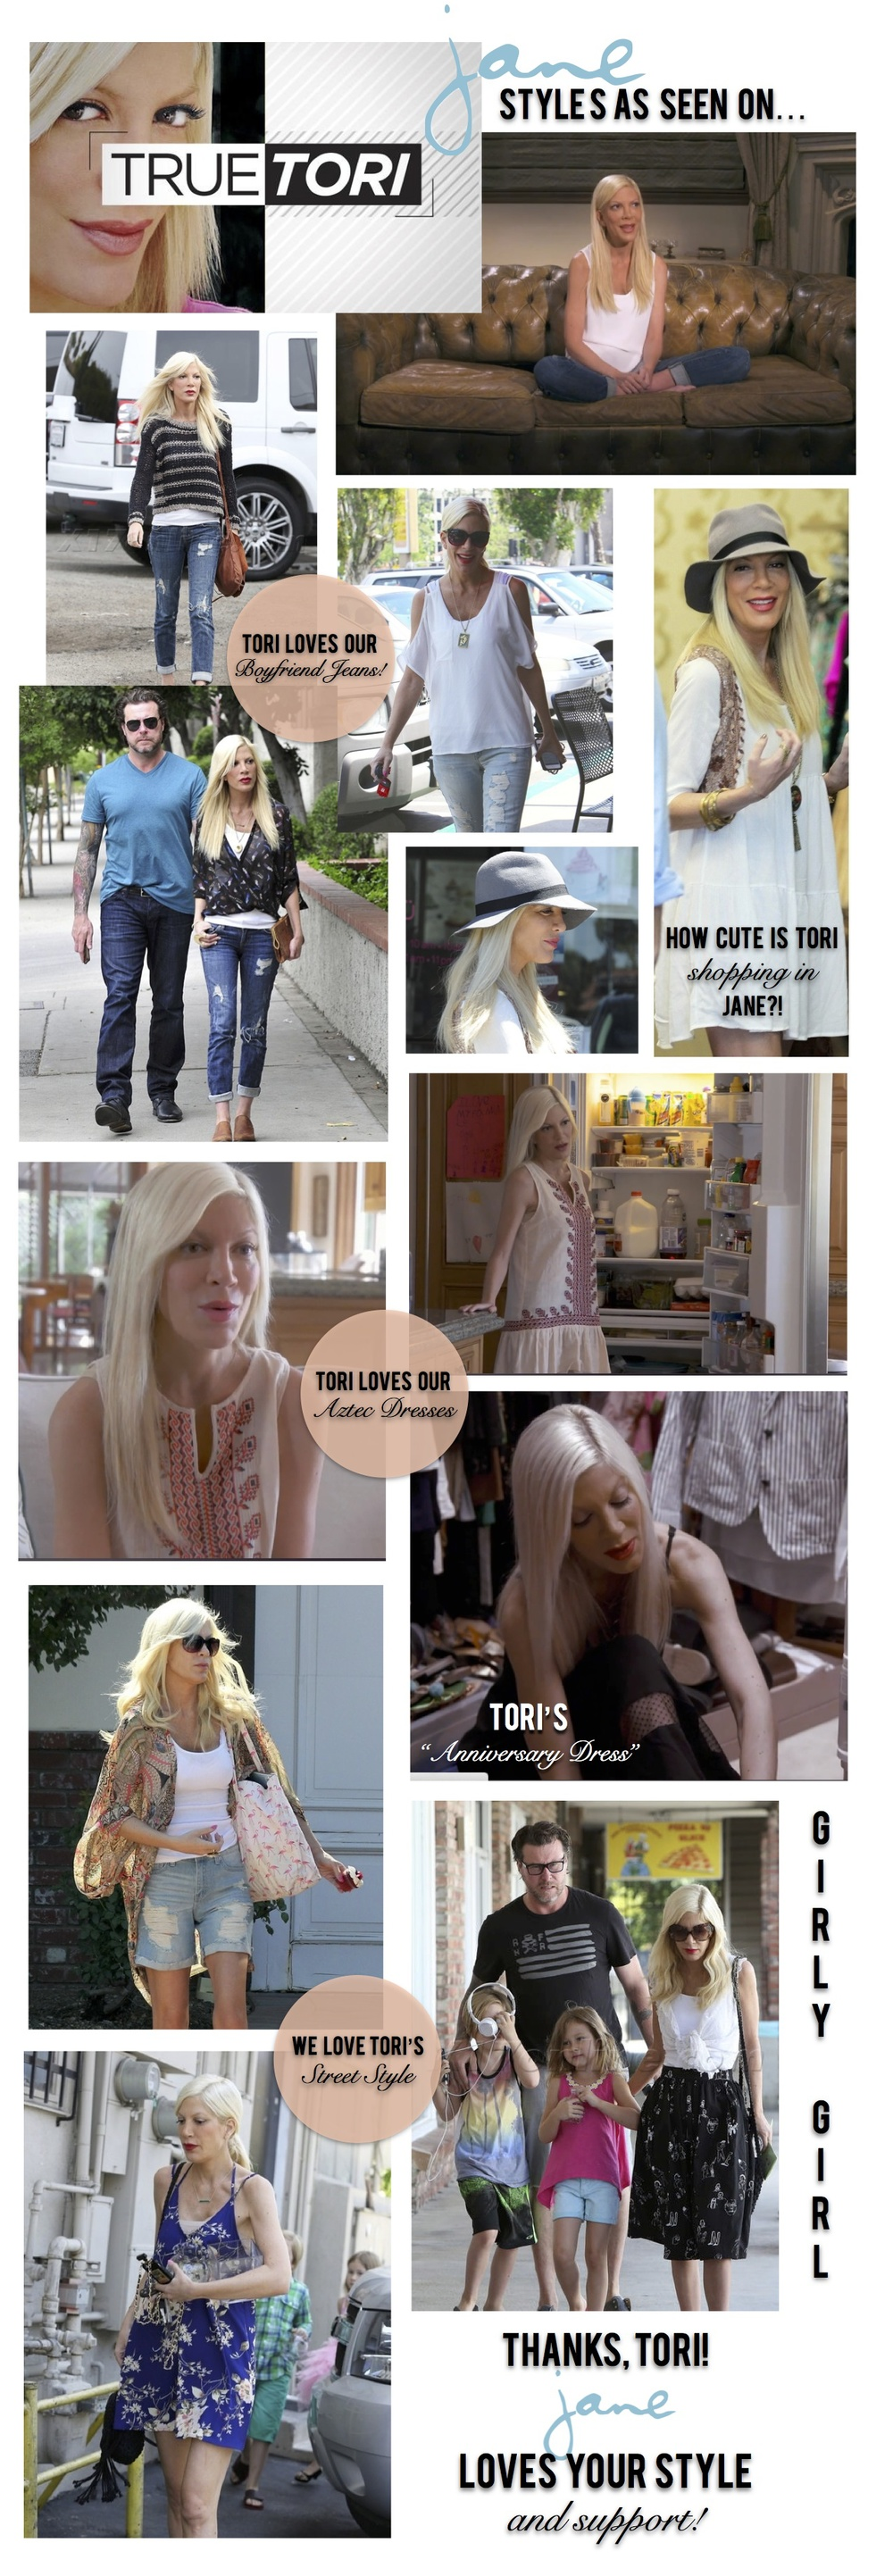 Jane has been lucky to be graced by the lovely Tori Spelling on multiple occasions, where she has left our store head to toe in Jane! Her street style and on camera ensembles have featured so many pieces from our store that we just had to take a moment to thank her for all the support!